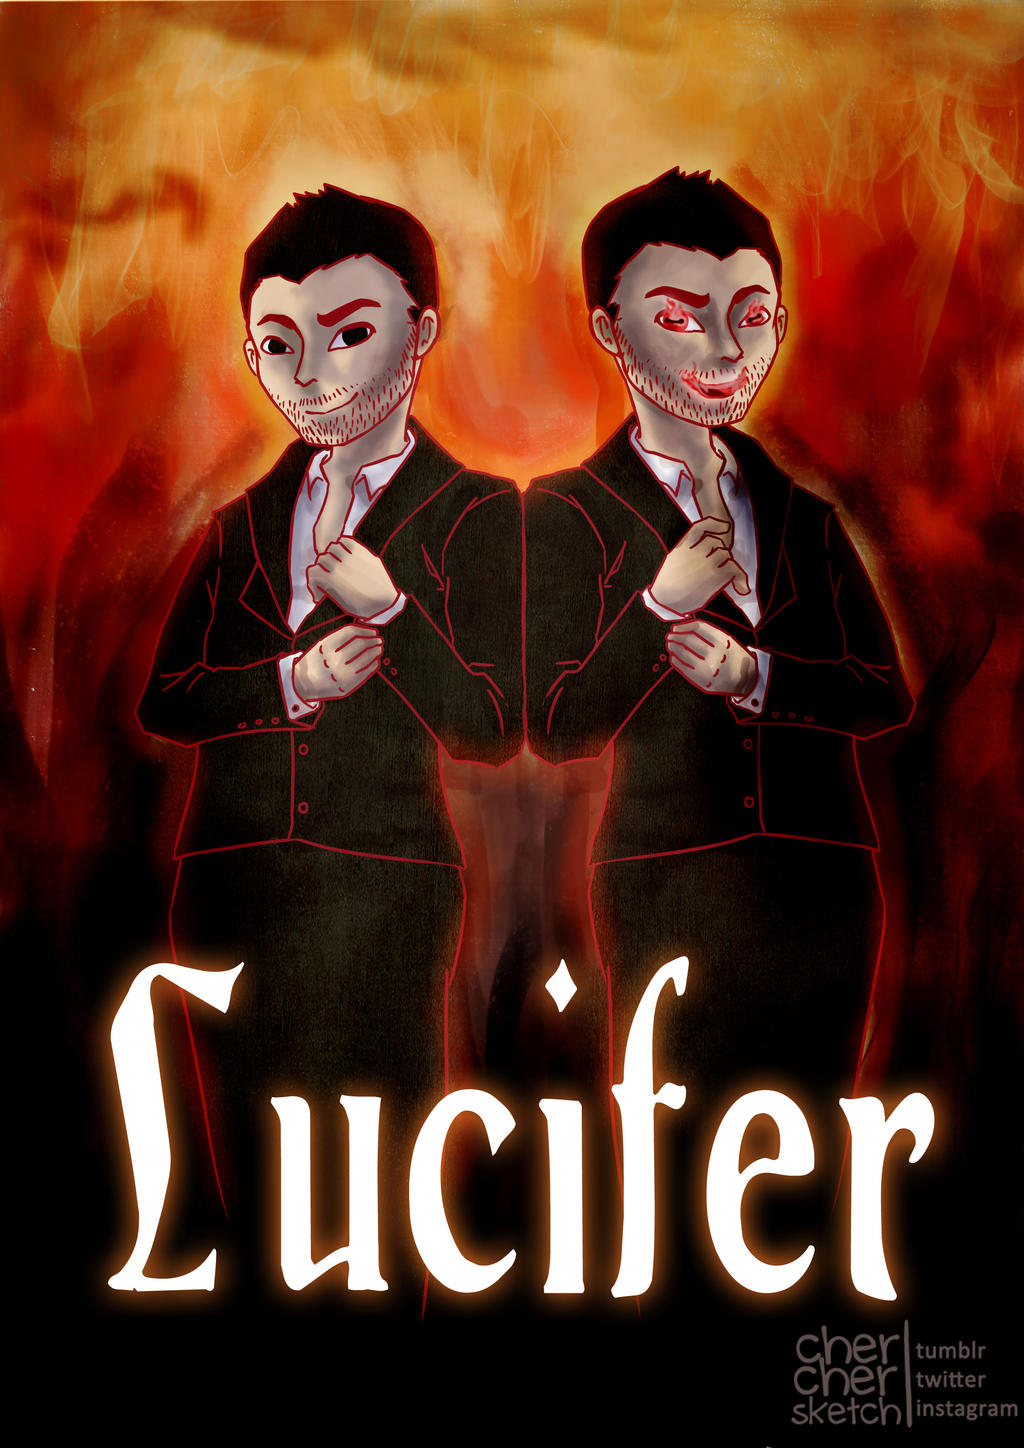 a review of the story of lucifer the prince of darkness